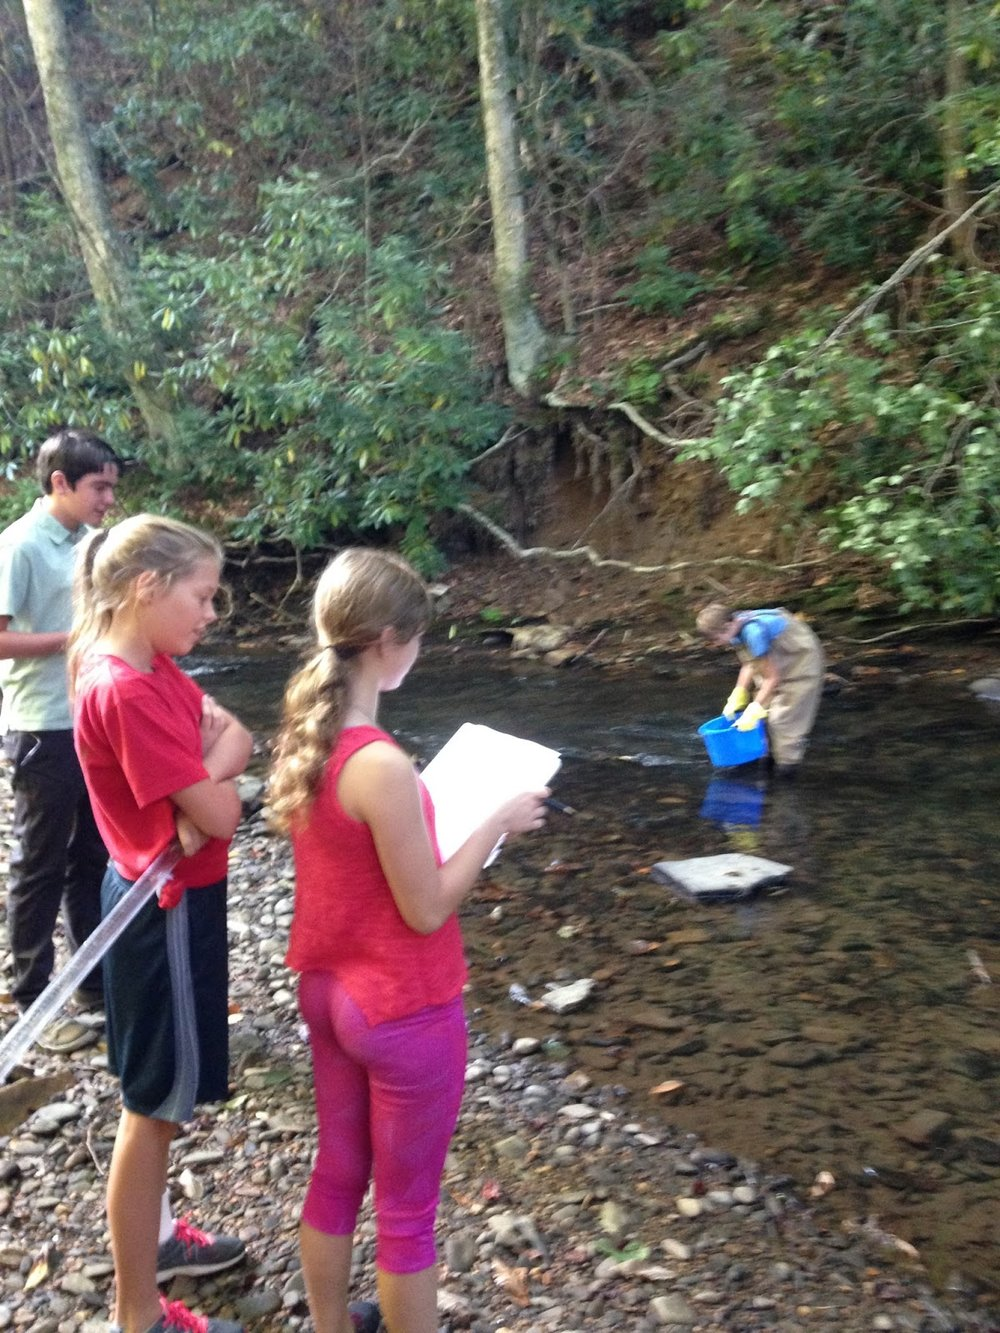 Middle Schoolers monitoring Howard's Creek - The Middle Schoolers are continuing to monitor the health of Howard's Creek and submitting results to the State.